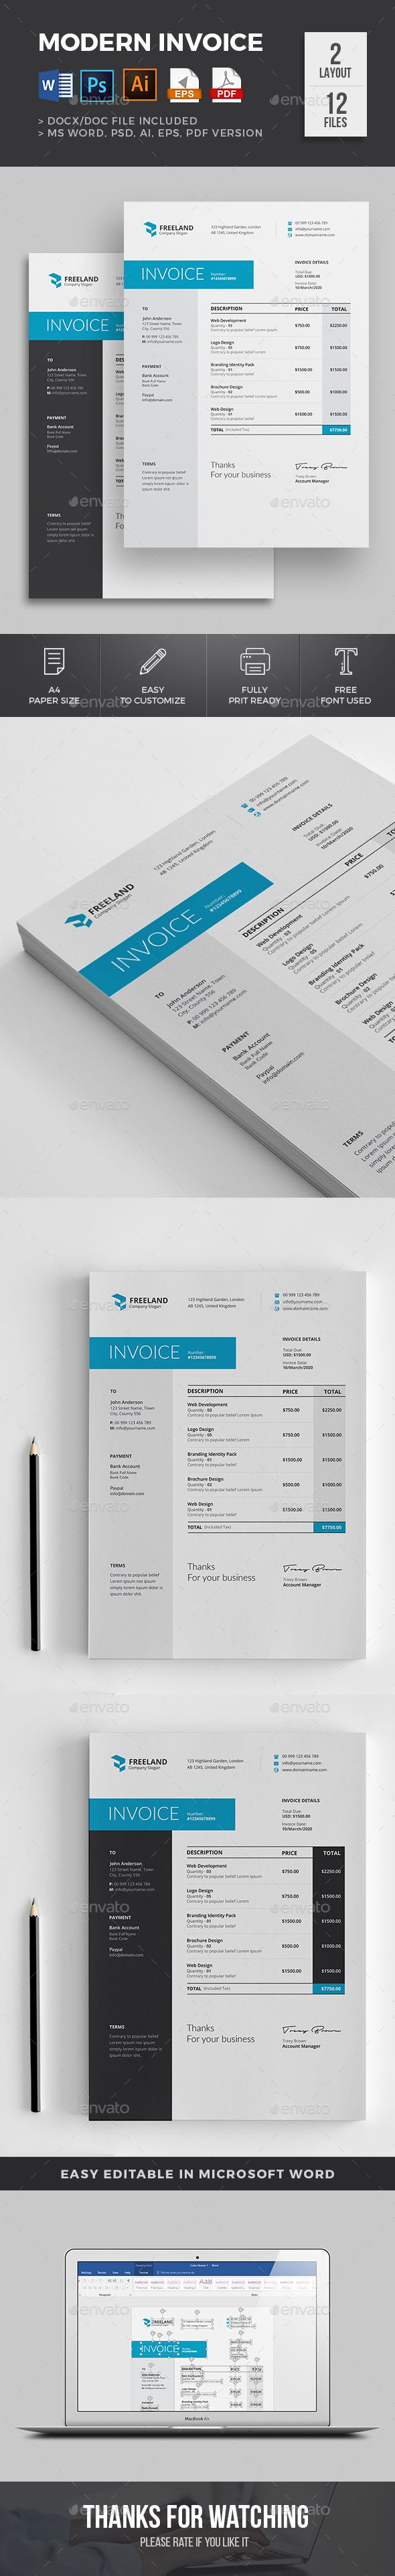 Invoice Template PSD Vector EPS AI Illustrator